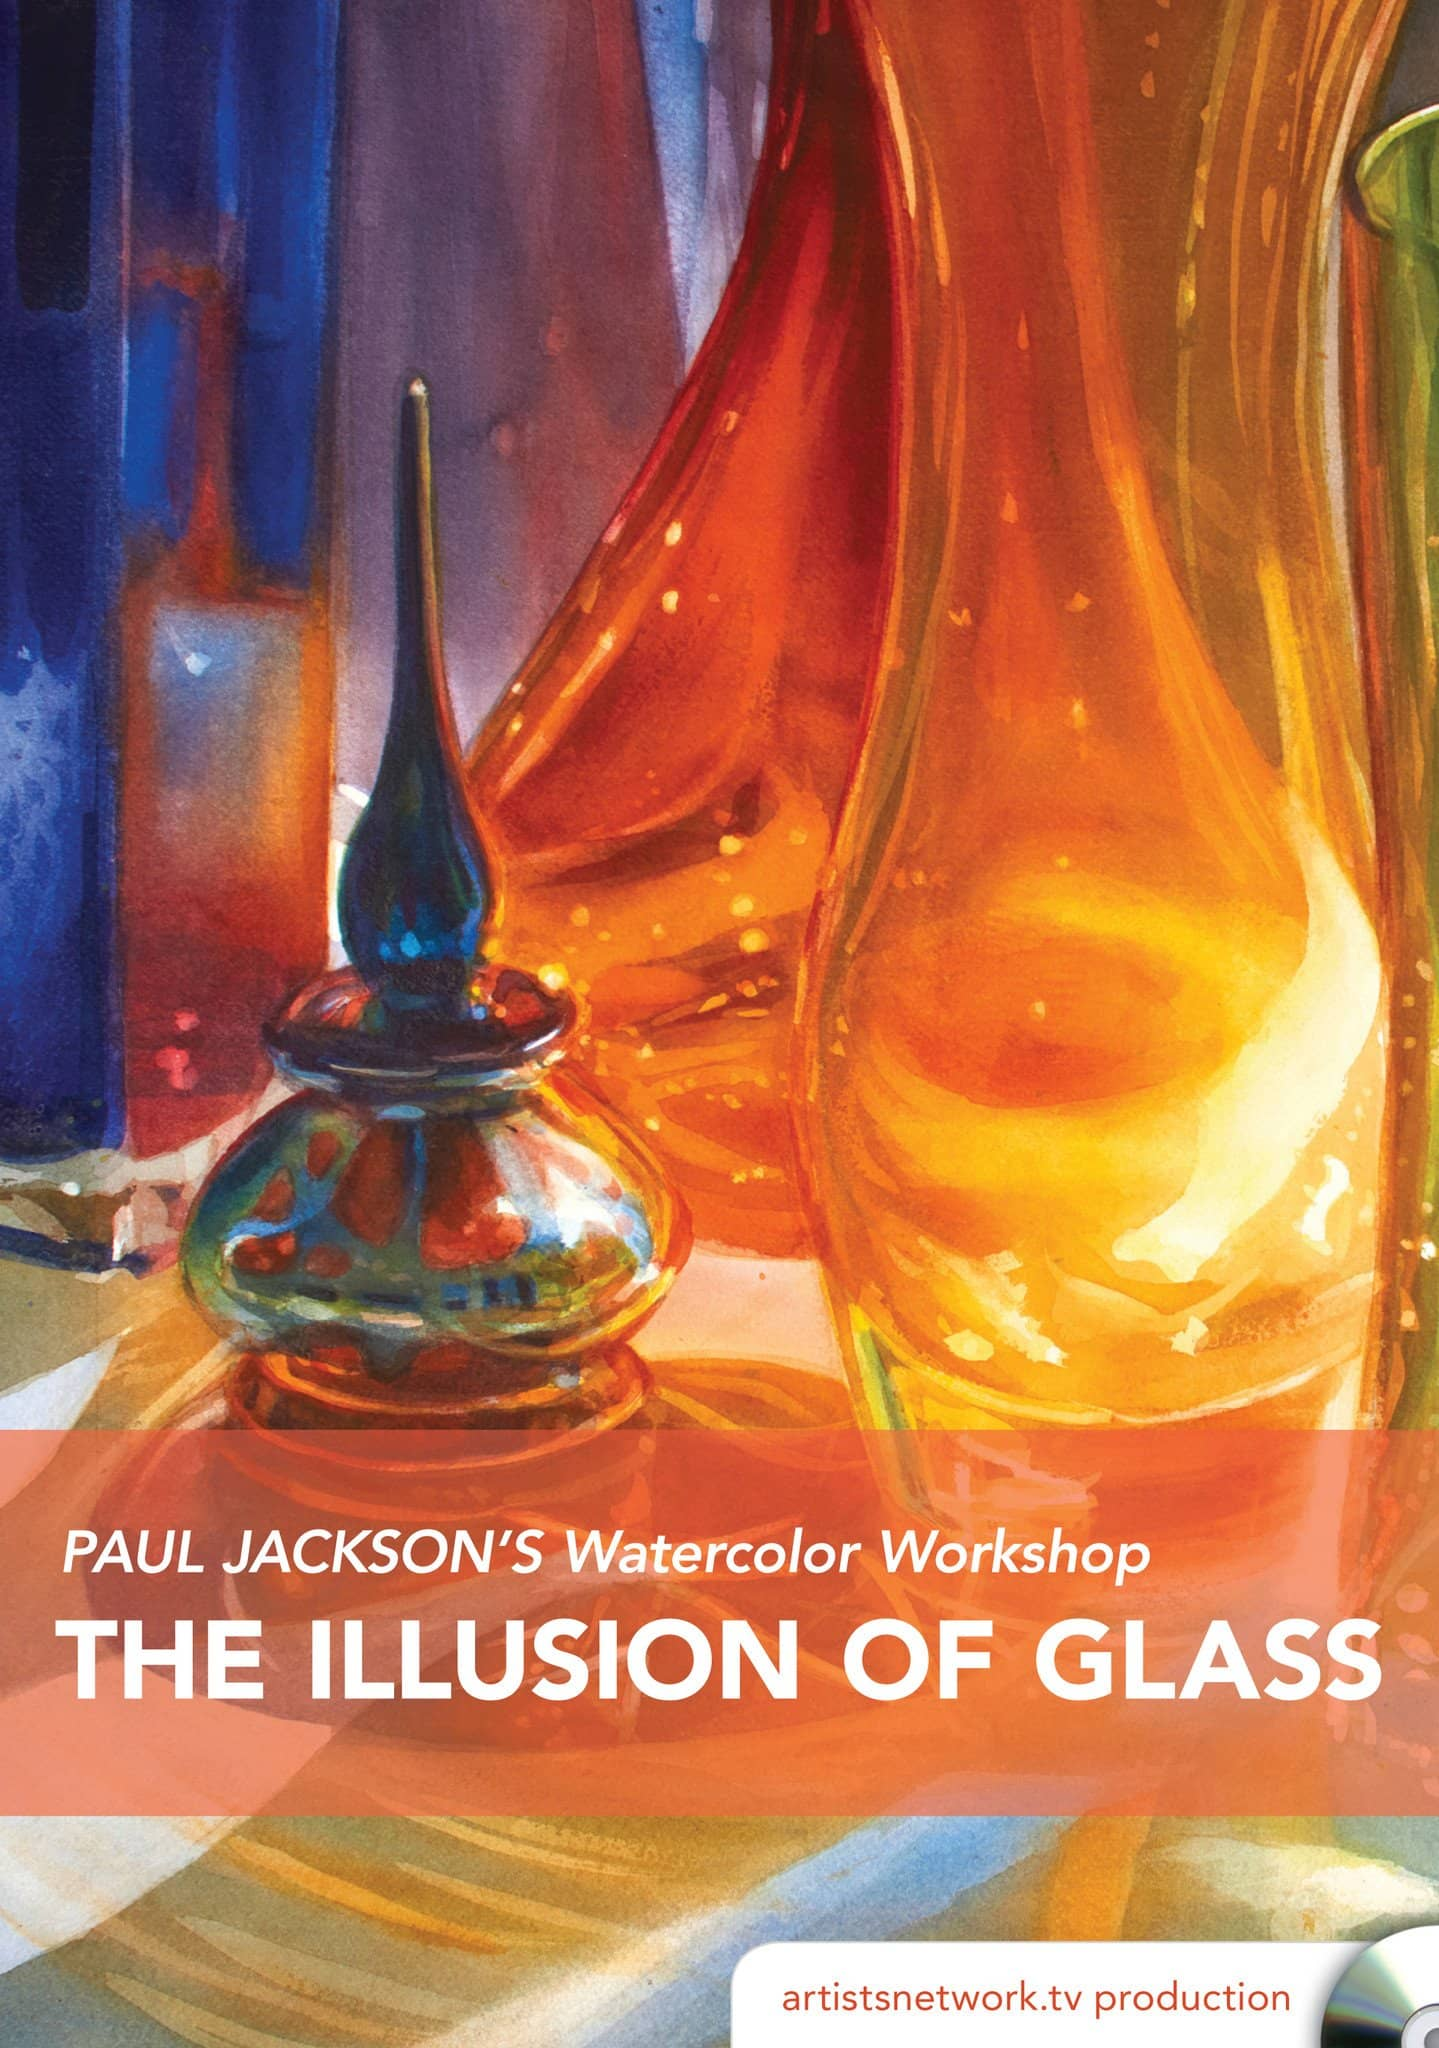 Paul Jackson's Watercolor Workshop:  The Illusion of Glass